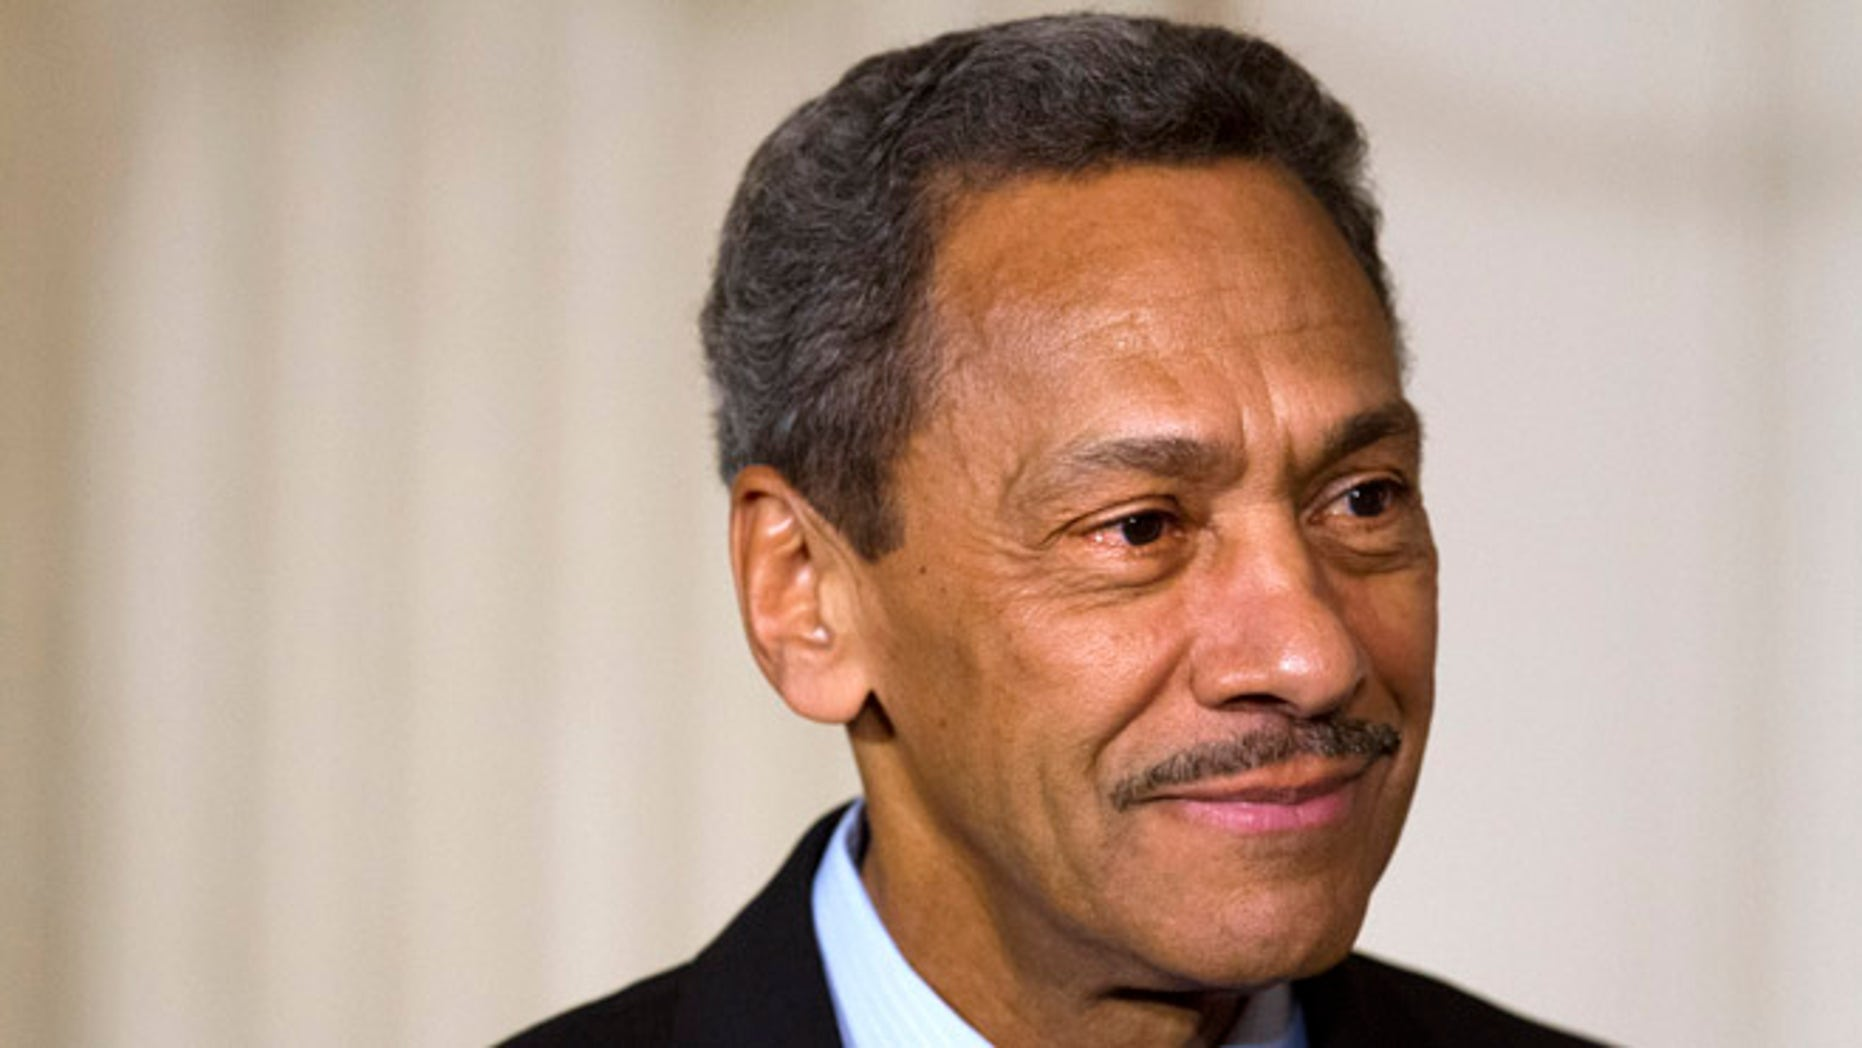 May 1, 2013: Rep. Mel Watt, D-N.C., listens as President Obama announces Watt as his nominee for the Federal Housing Finance Agency.